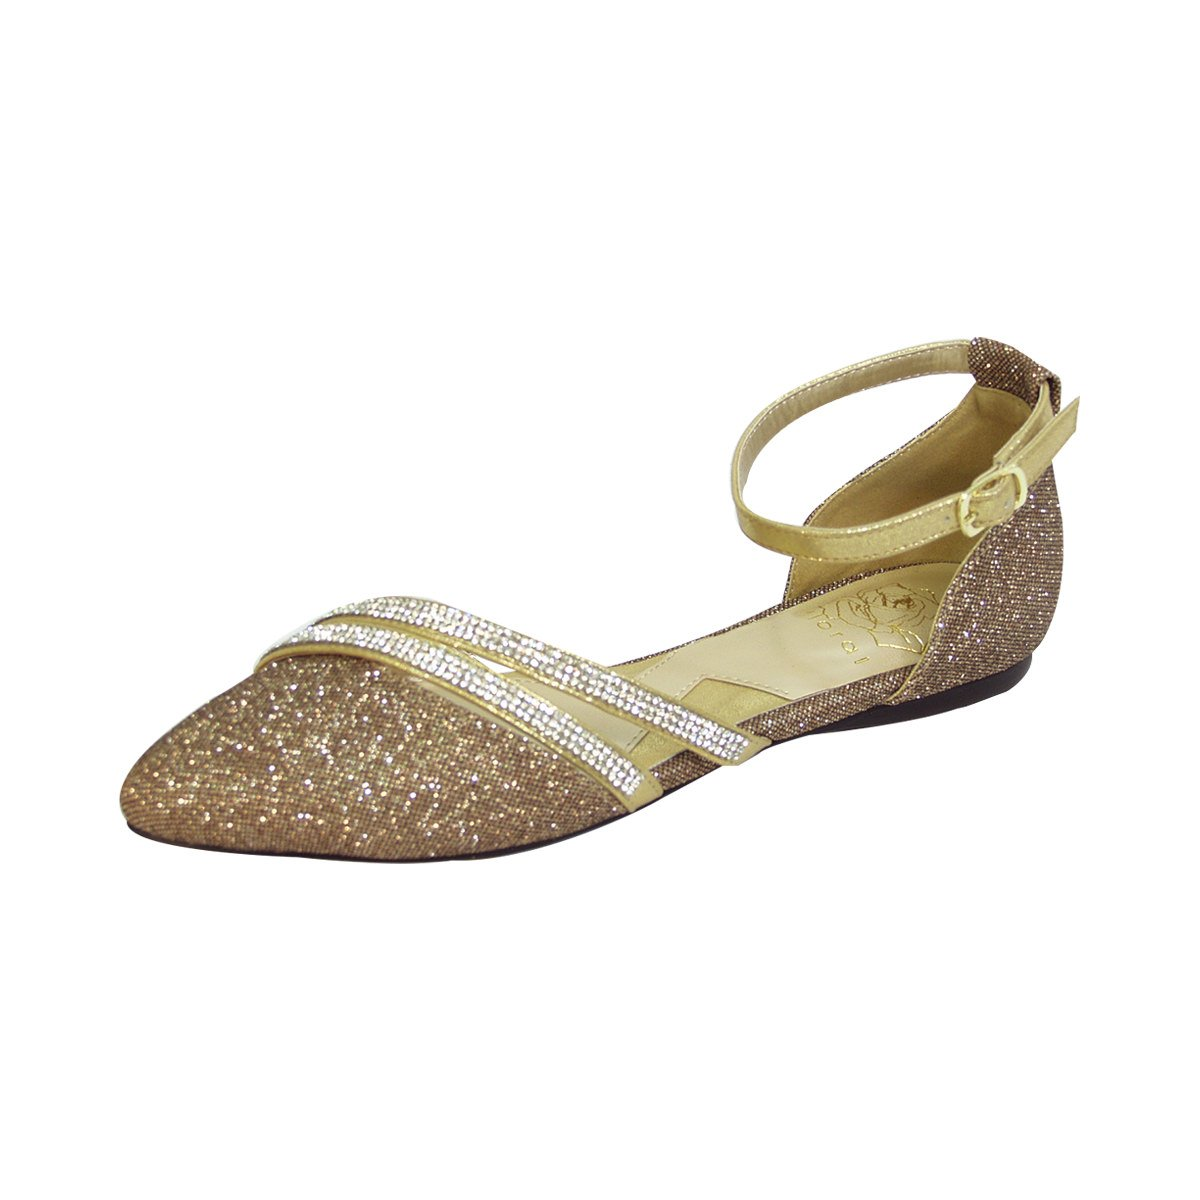 Fuzzy Hallie Women Wide Width Open Shank Pointed Toe Buckle Ankle Strap Flats (Size & Measurement) B0773S9RTY 9.5 D|Bronze